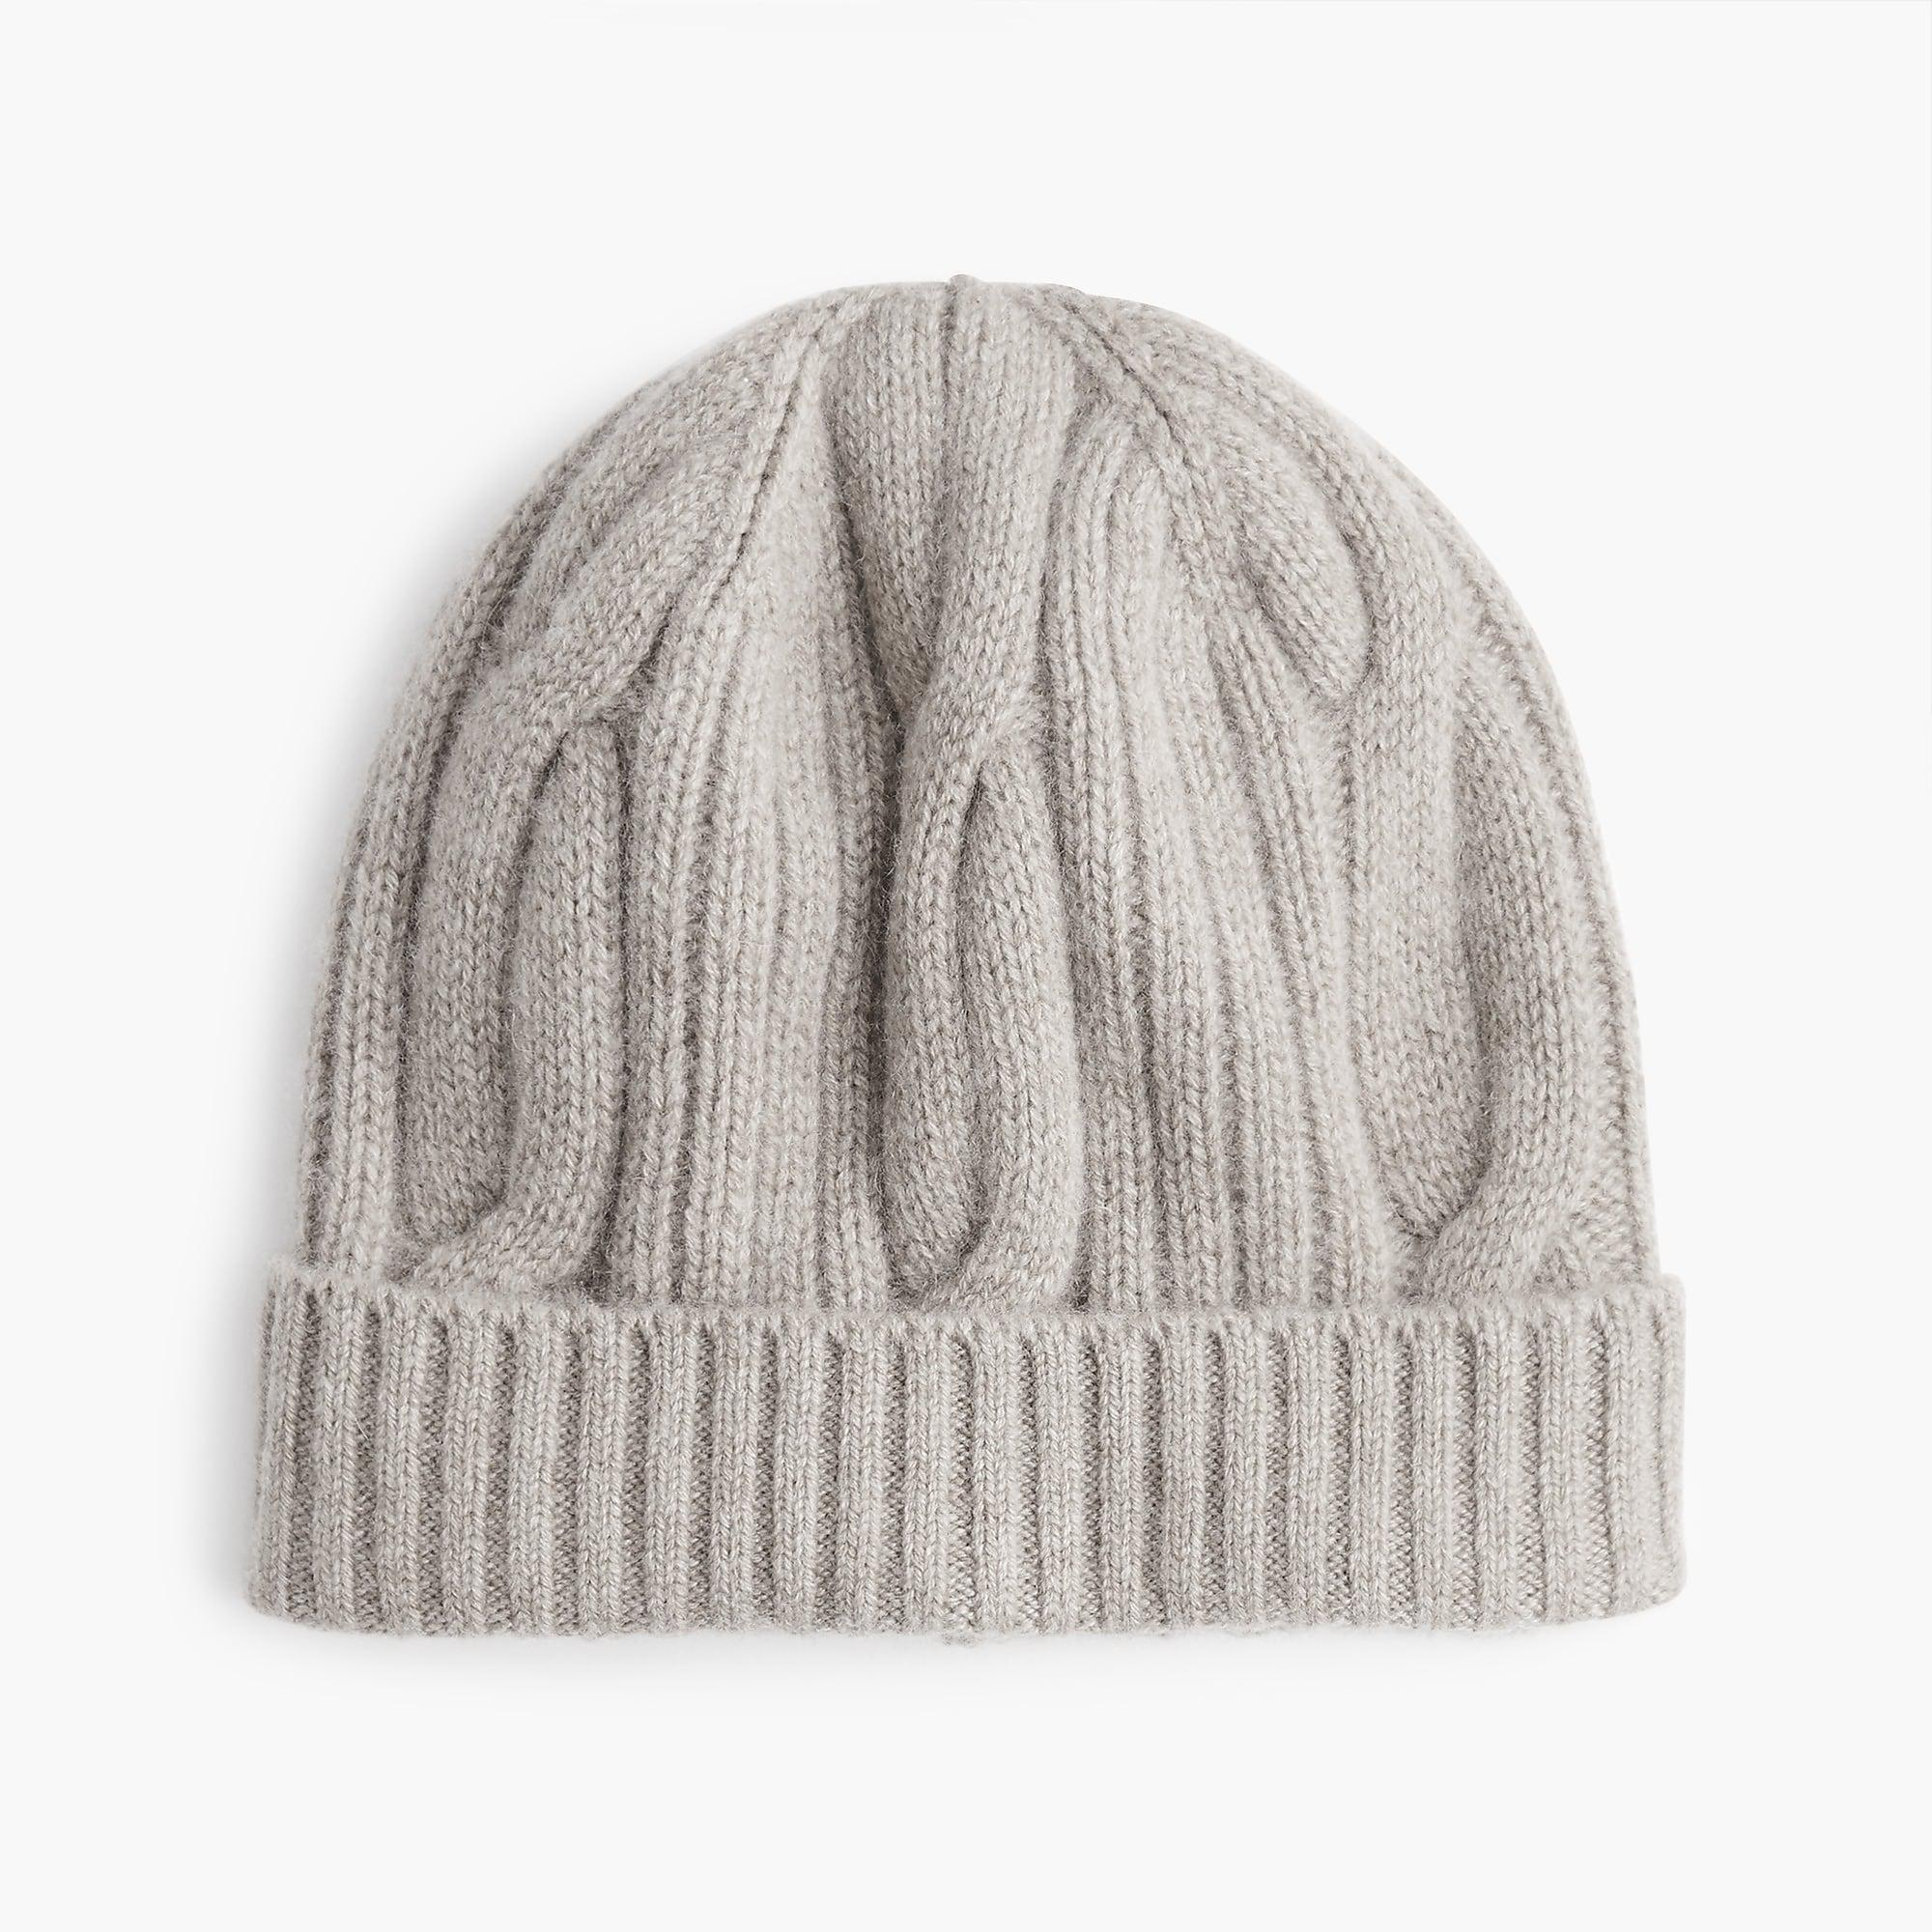 dbde6891f21b0 J.Crew Ribbed Cable-knit Beanie In Everyday Cashmere in Gray - Lyst